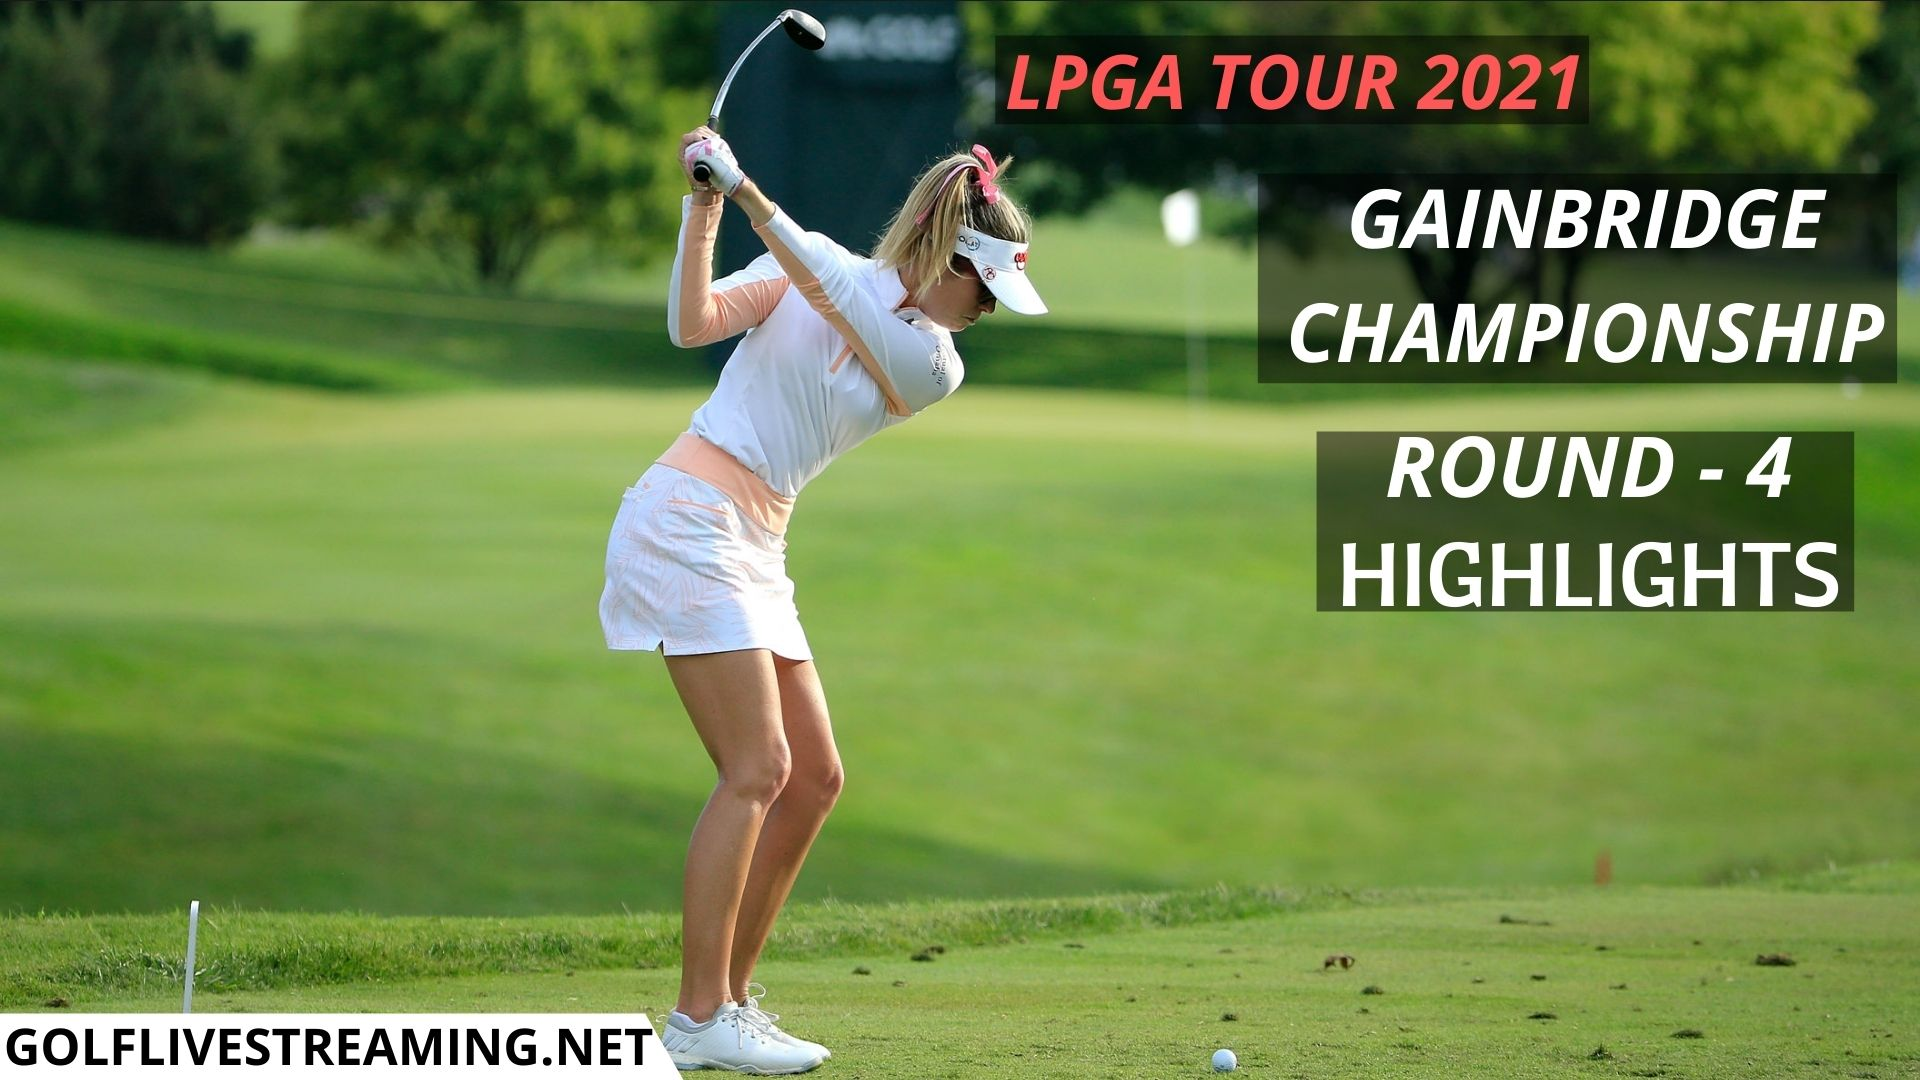 Gainbridge Championship Round 4 Highlights 2021 LPGA Tour